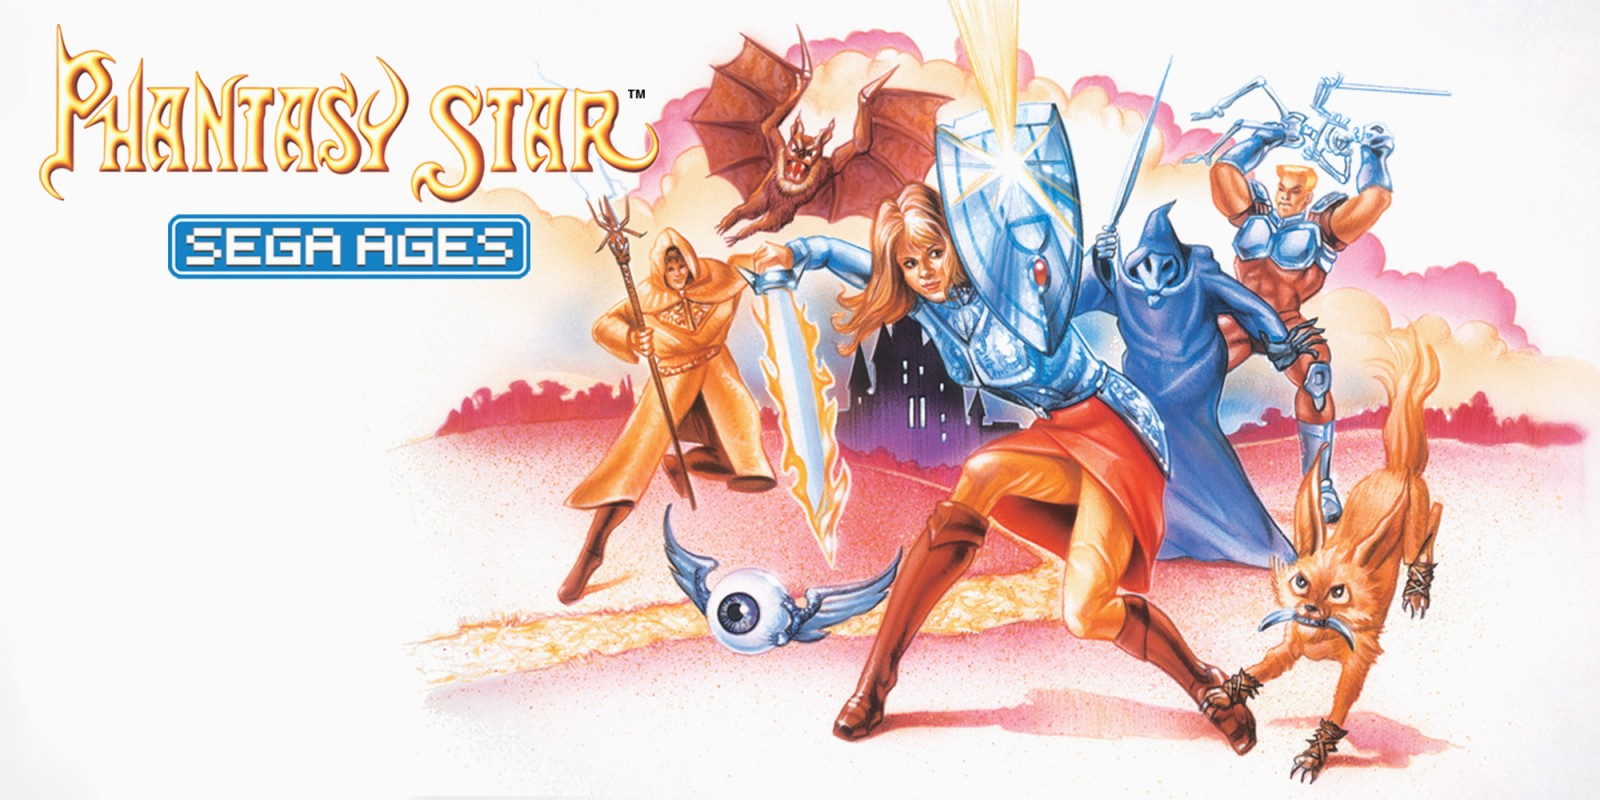 SEGA AGES Phantasy Star